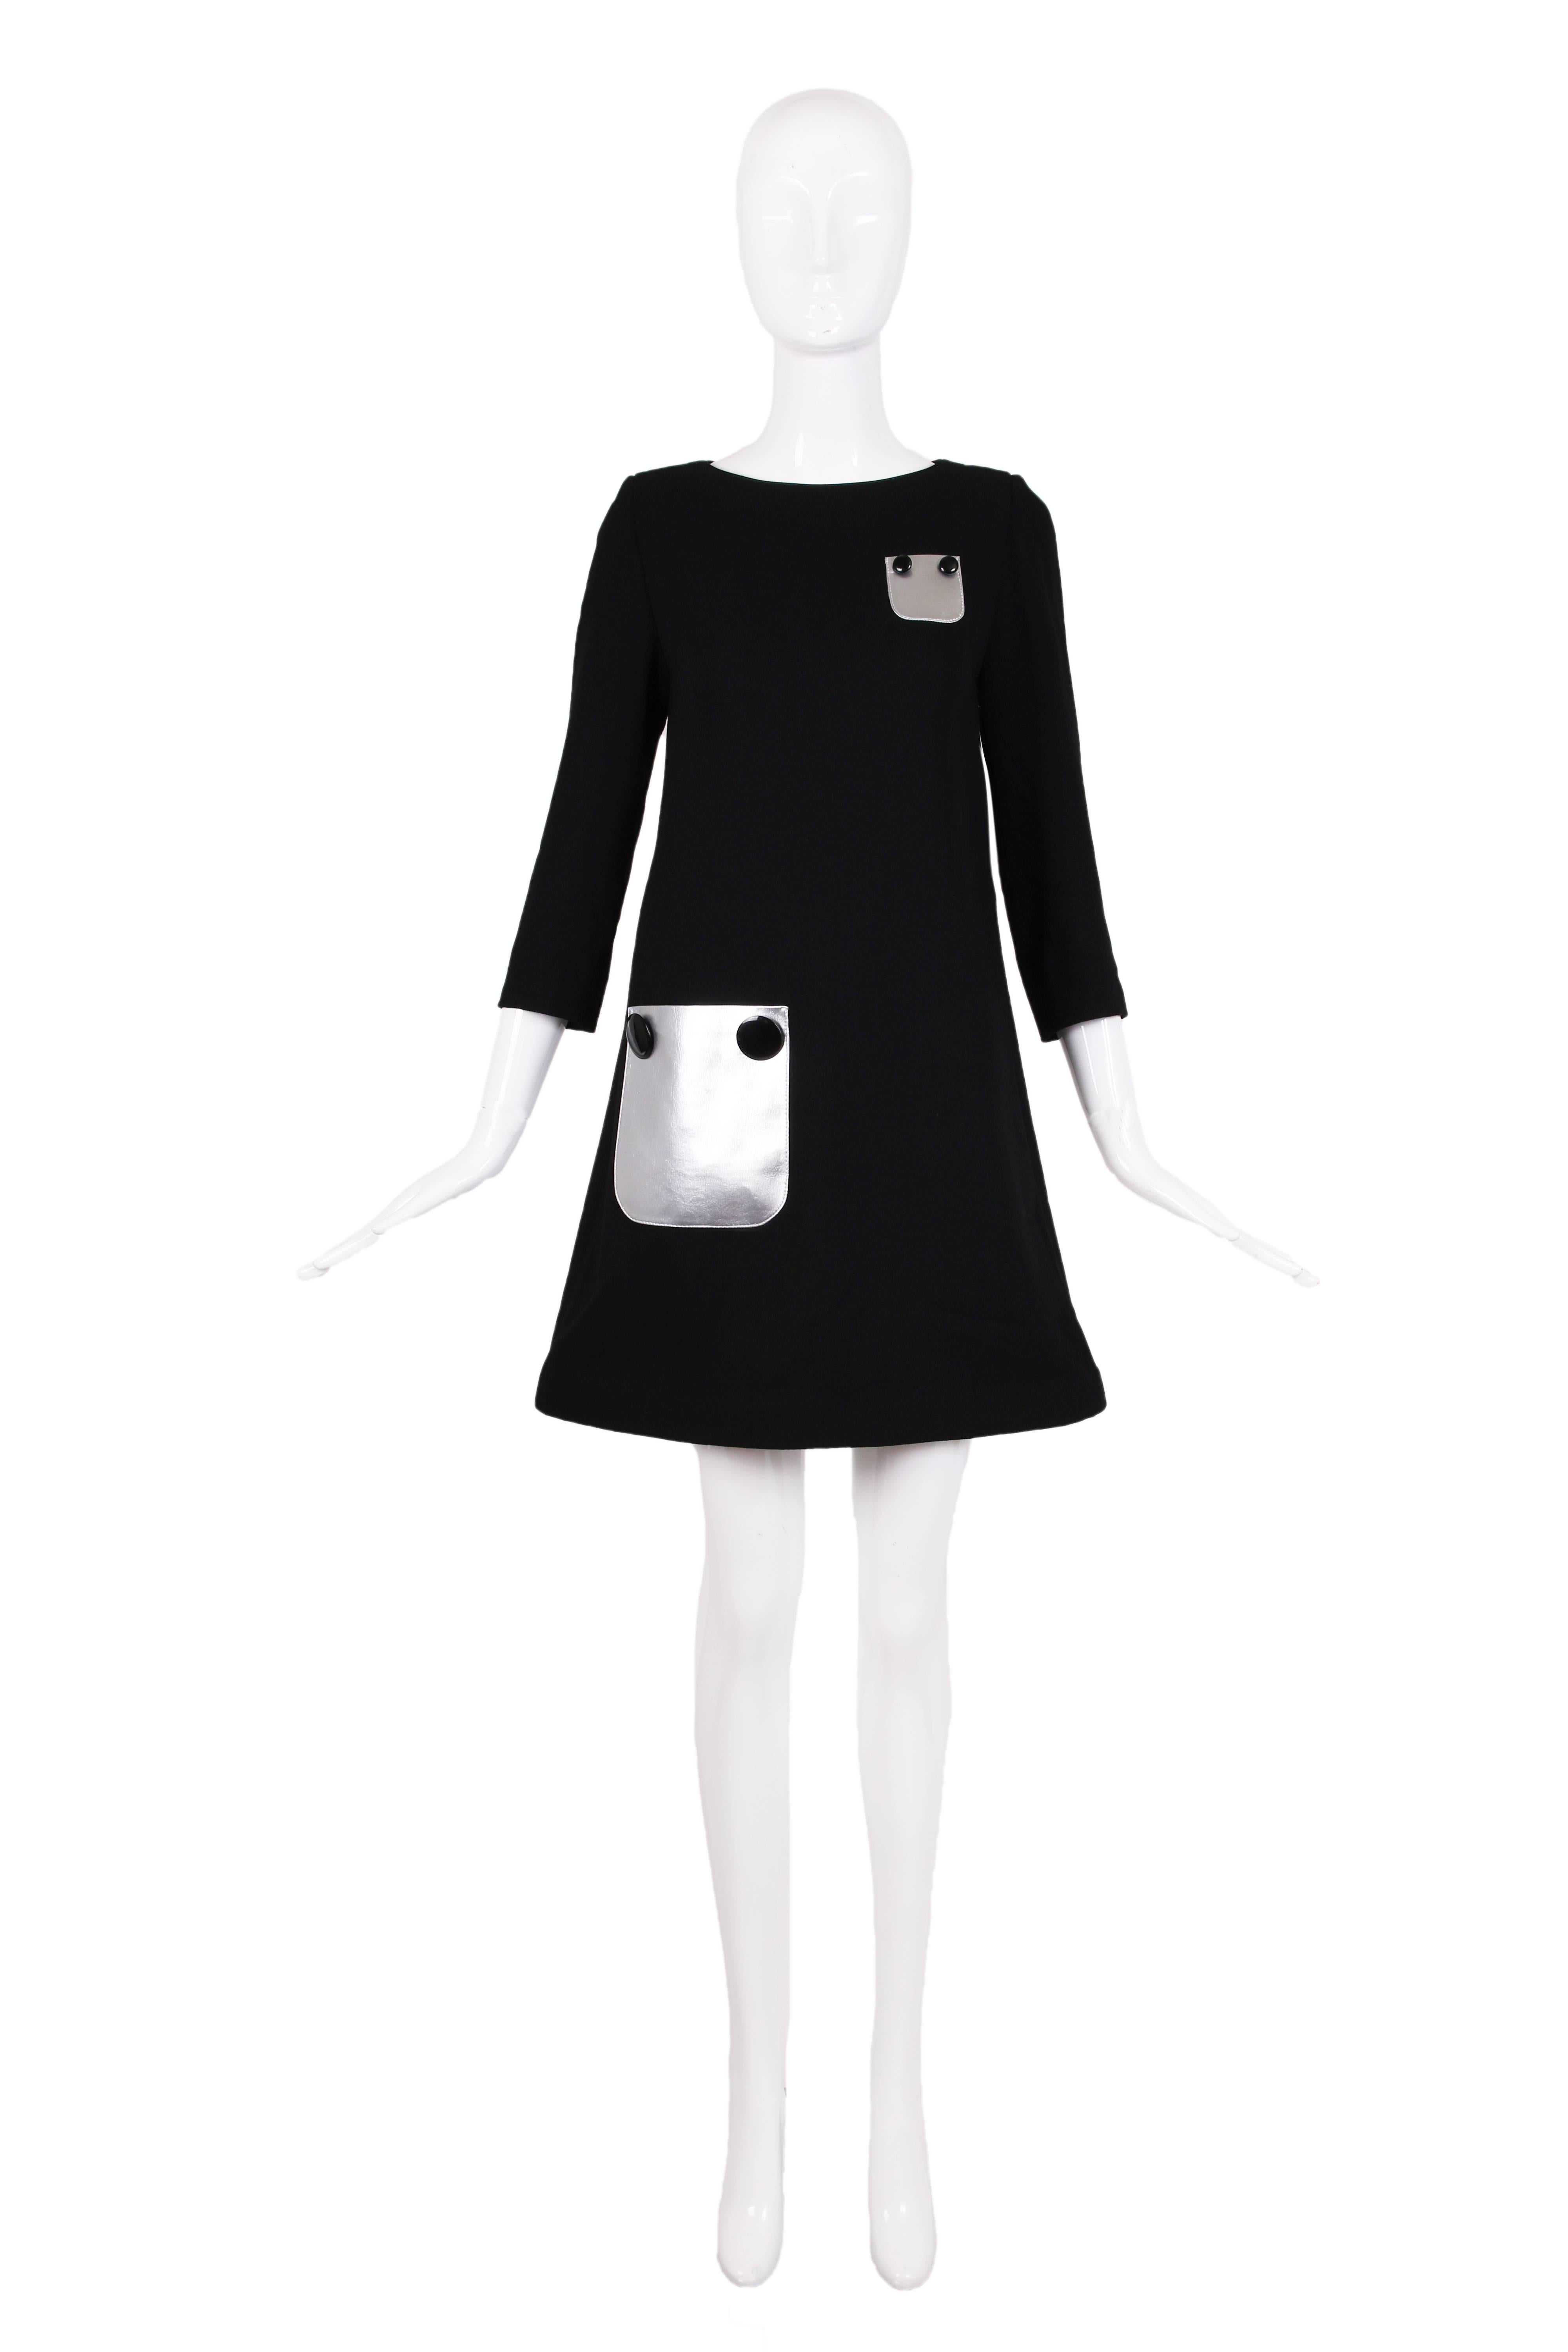 f2cbdaacc5a14 Pierre Cardin Haute Couture Mod Black Cocktail Dress w/Silver Pleather  Pockets For Sale at 1stdibs